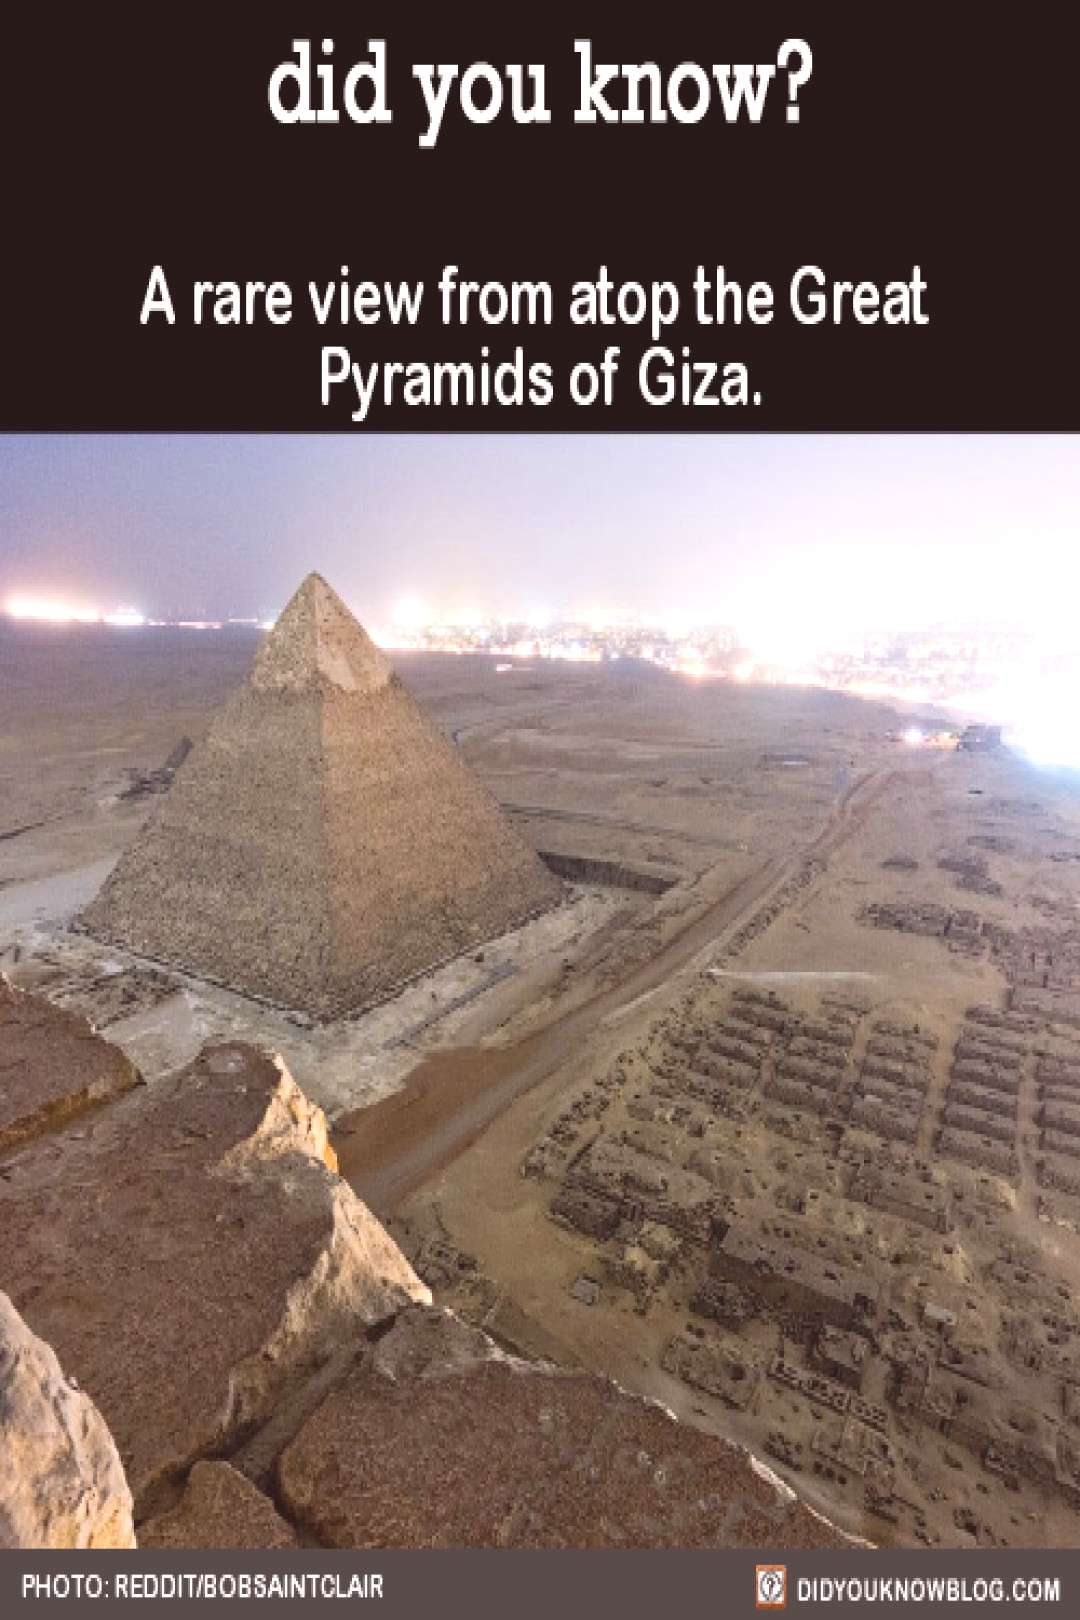 A rare view from atop the Great Pyramids of Giza. Source -